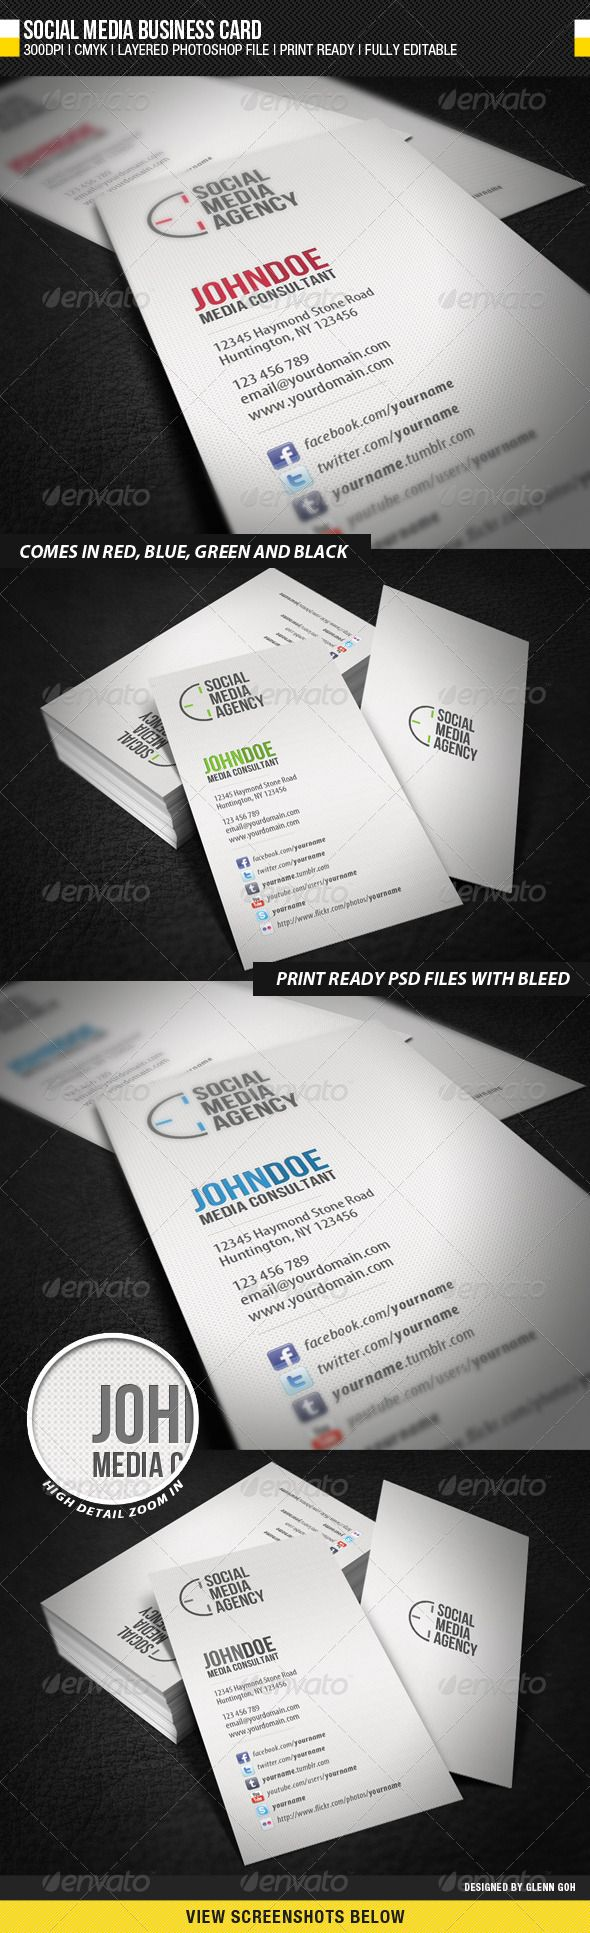 16 best Business Cards images on Pinterest | Cards, Business cards ...